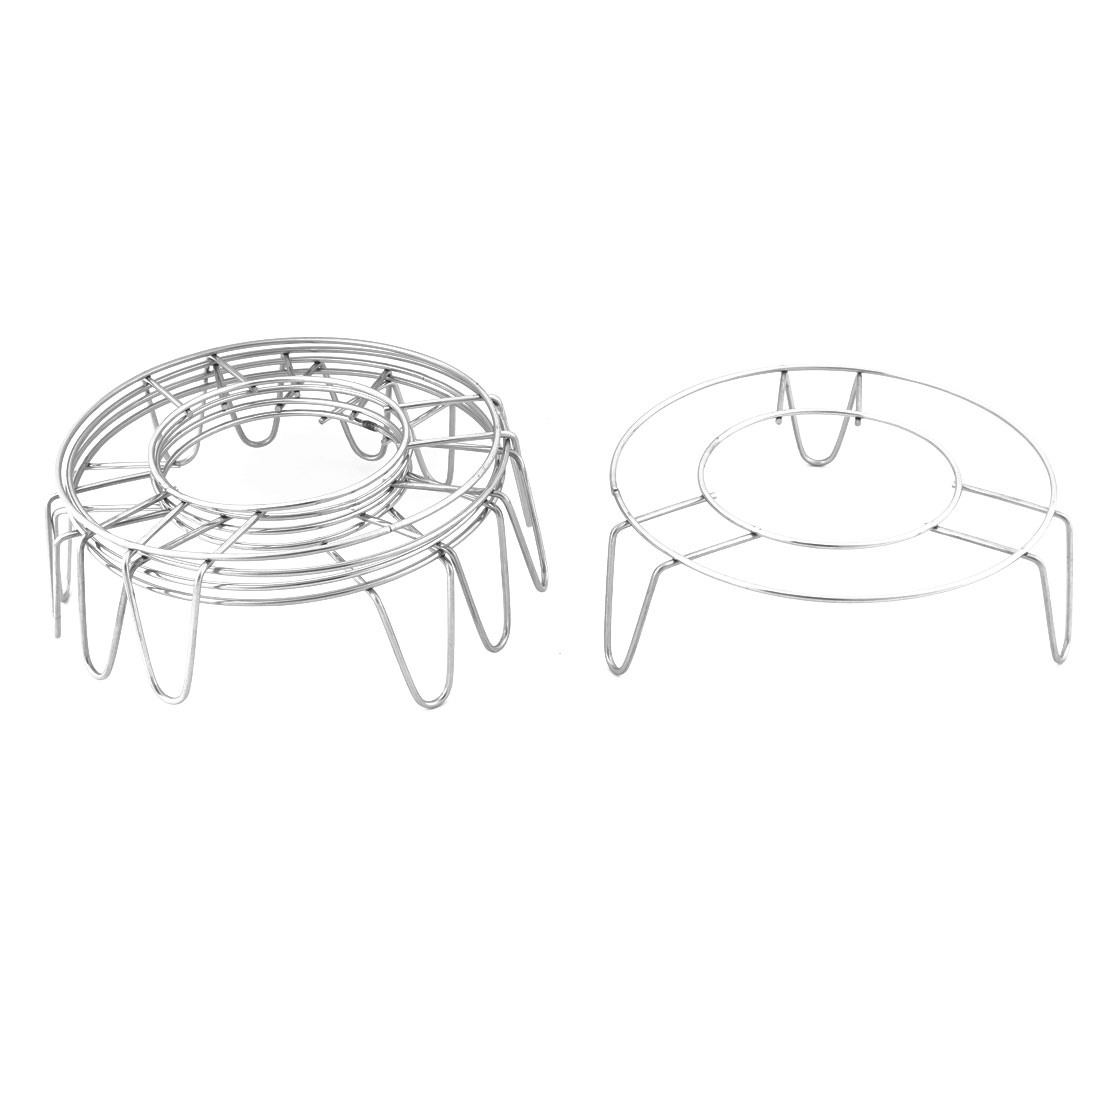 Stainless Steel Round Shape 3 Legs Design Cooking Steamer Steam Rack Stand 5 Pcs